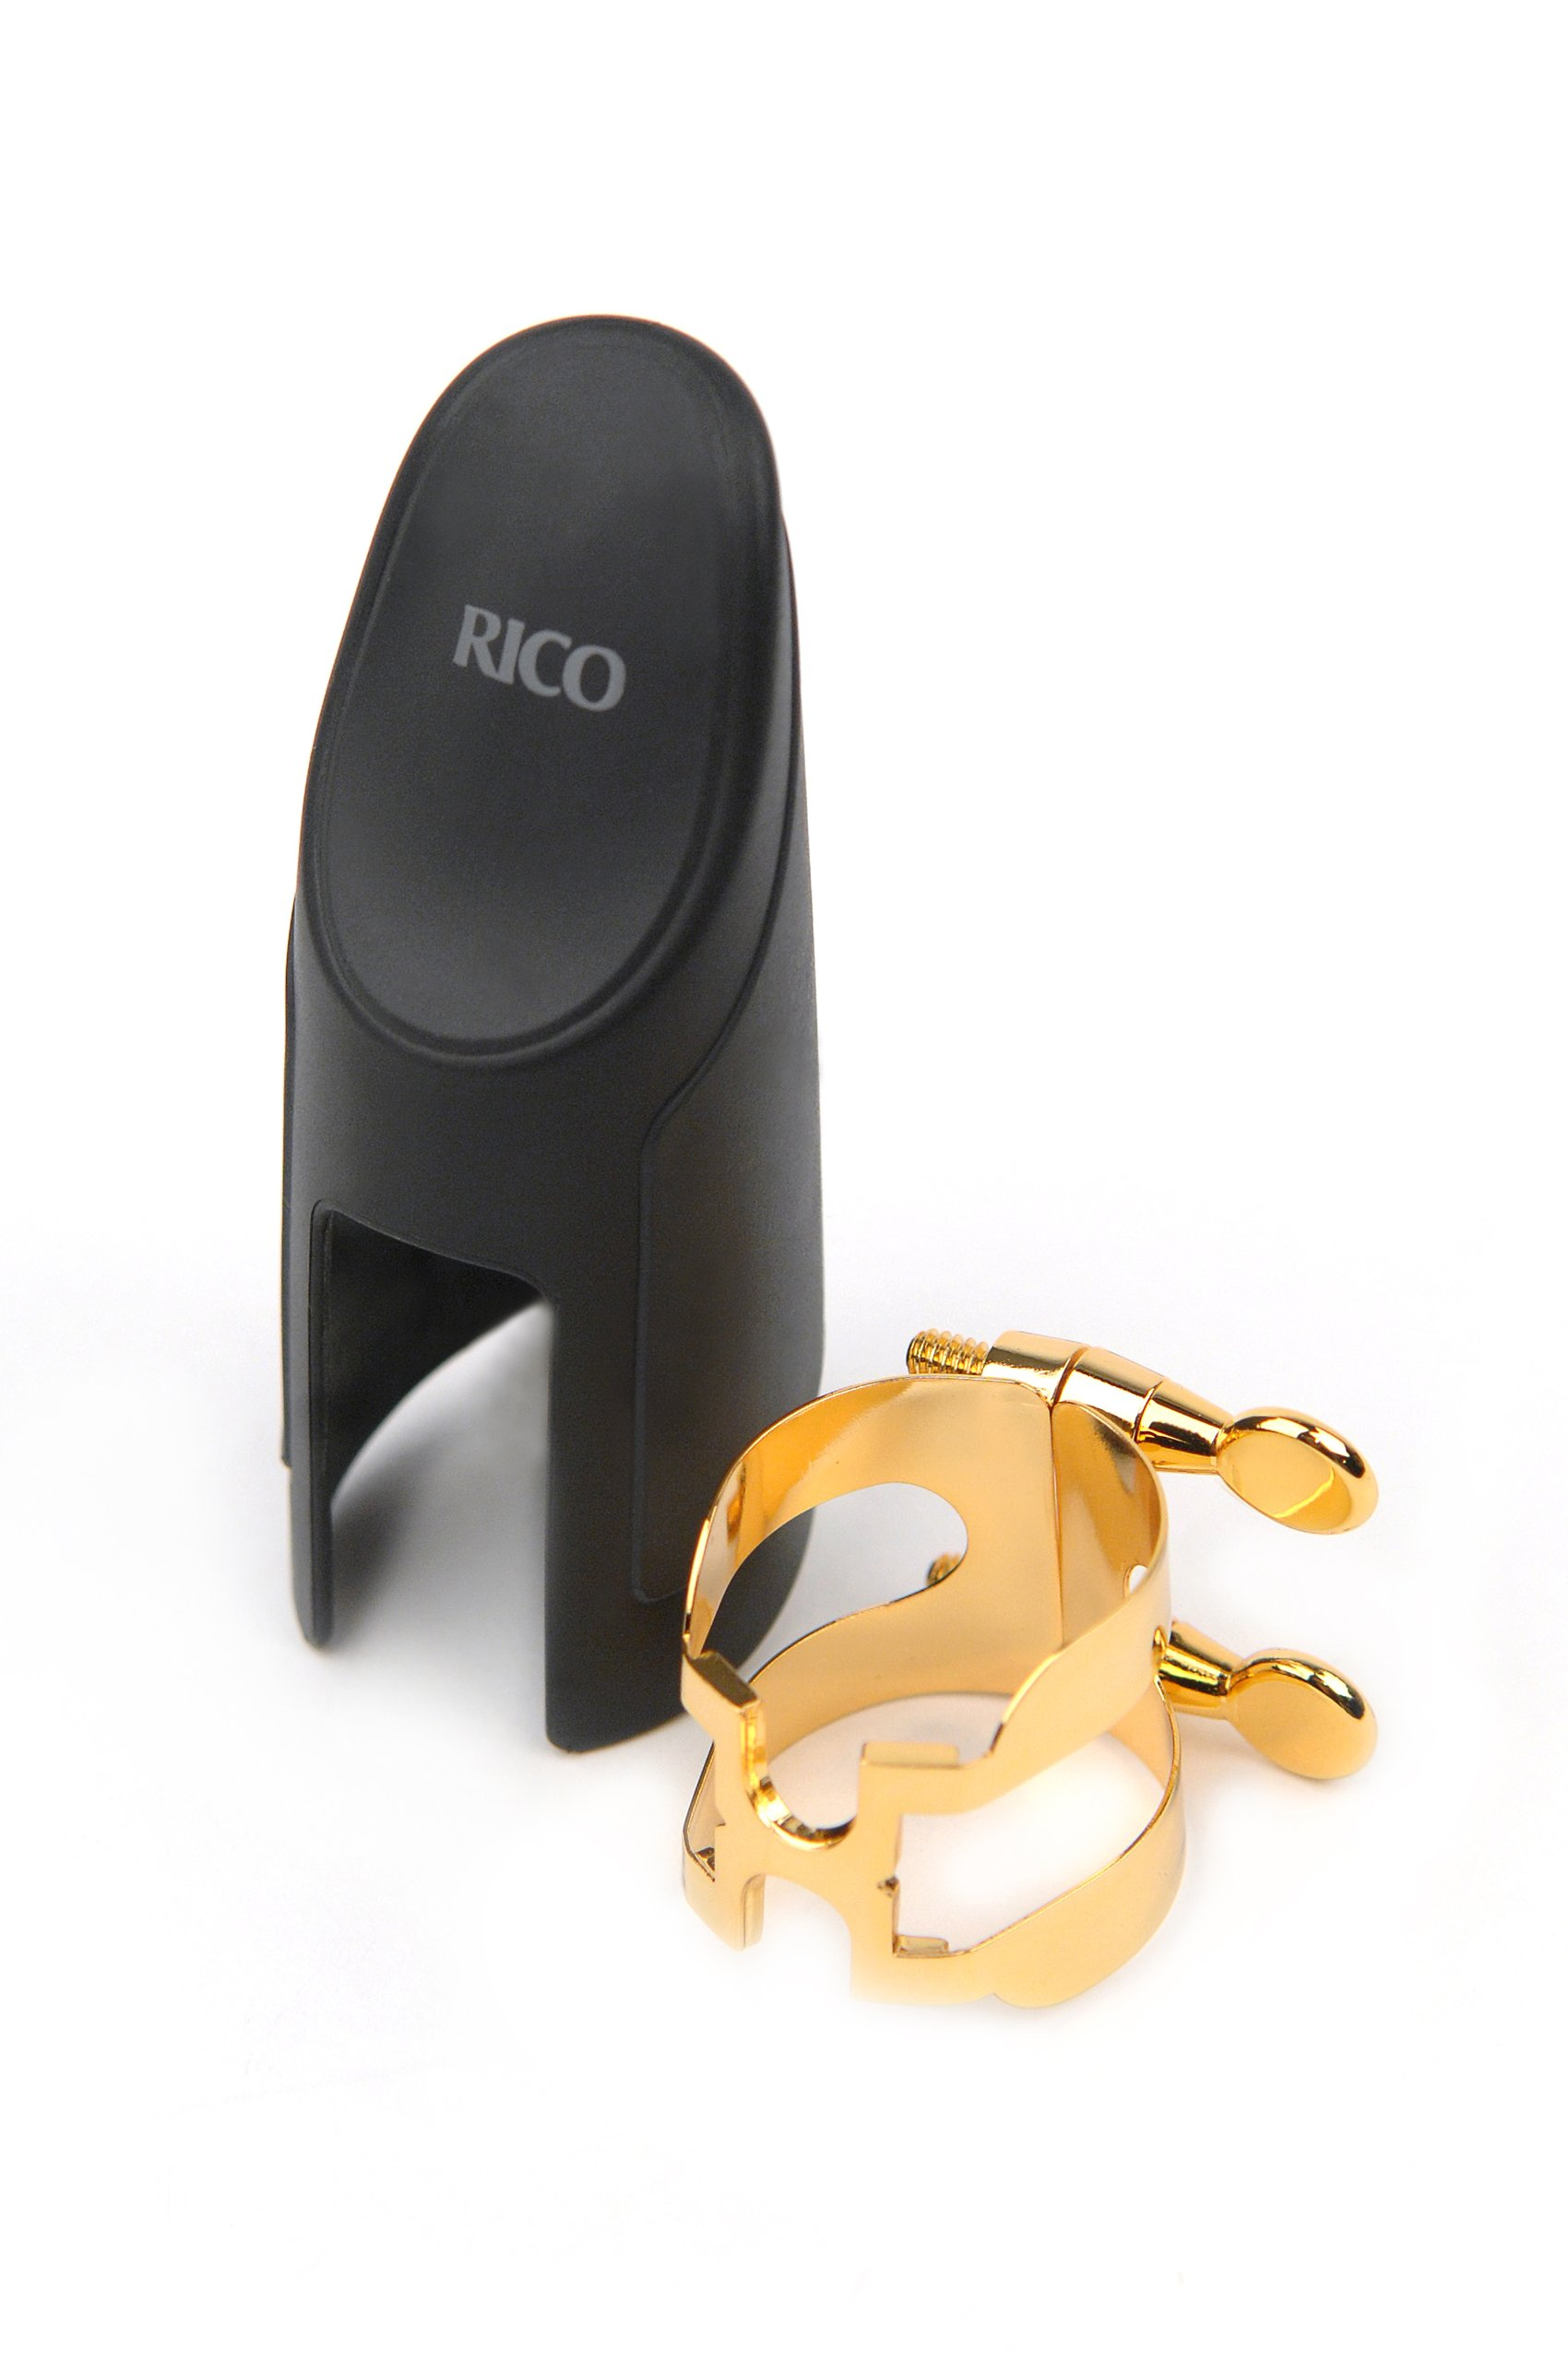 H-Ligature & Cap, Alto Sax, Gold-plated